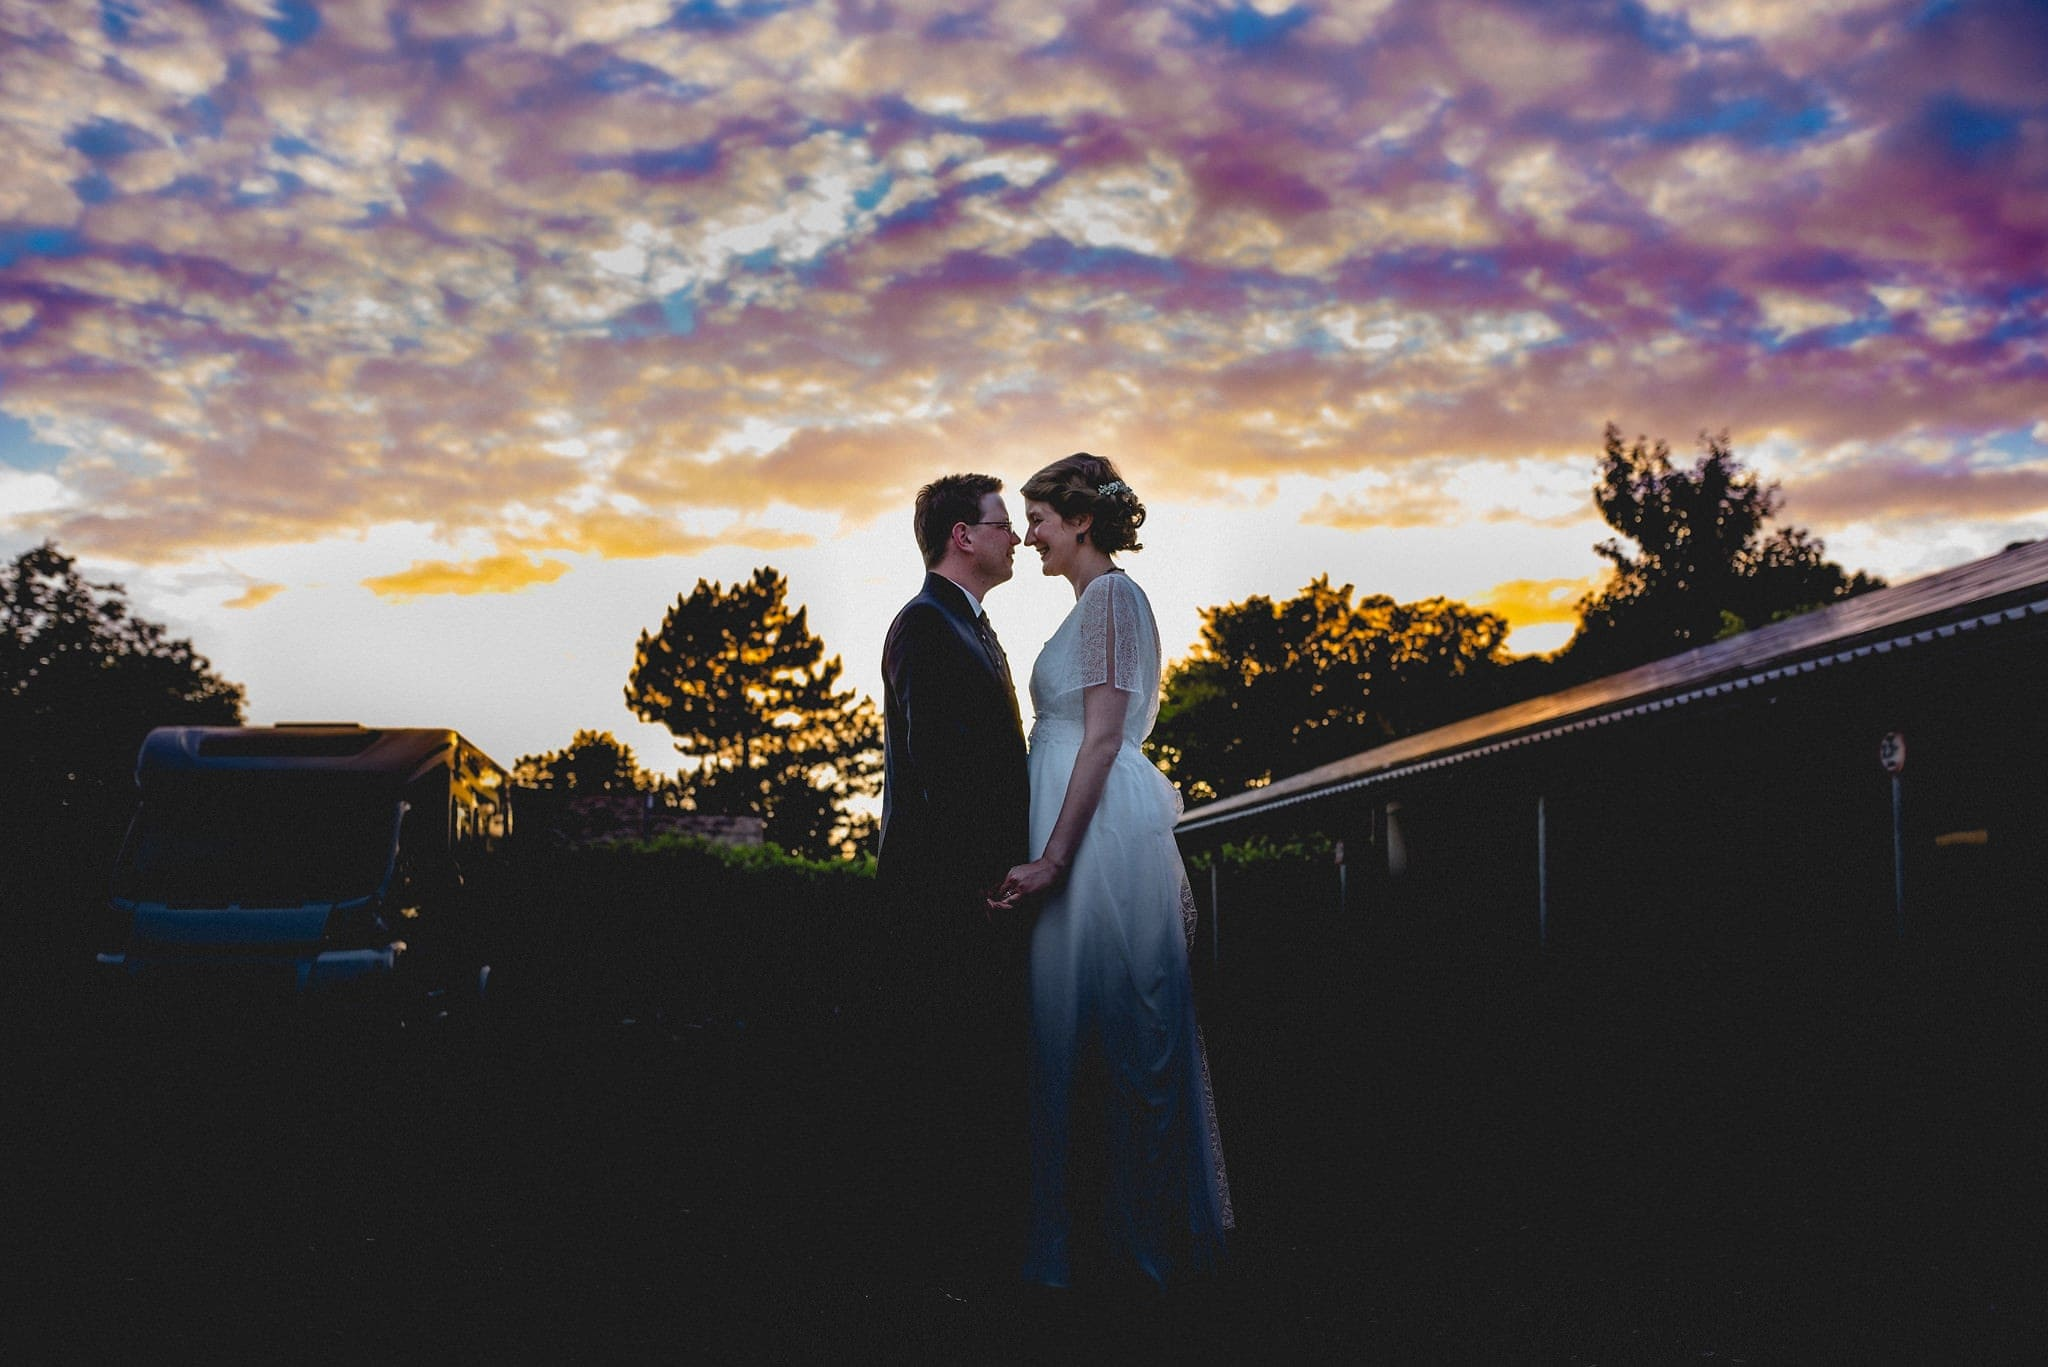 Bride and Groom standing in in front of a sunset sky at their Heartfelt Destination Wedding in Germany | Maria Assia Photography